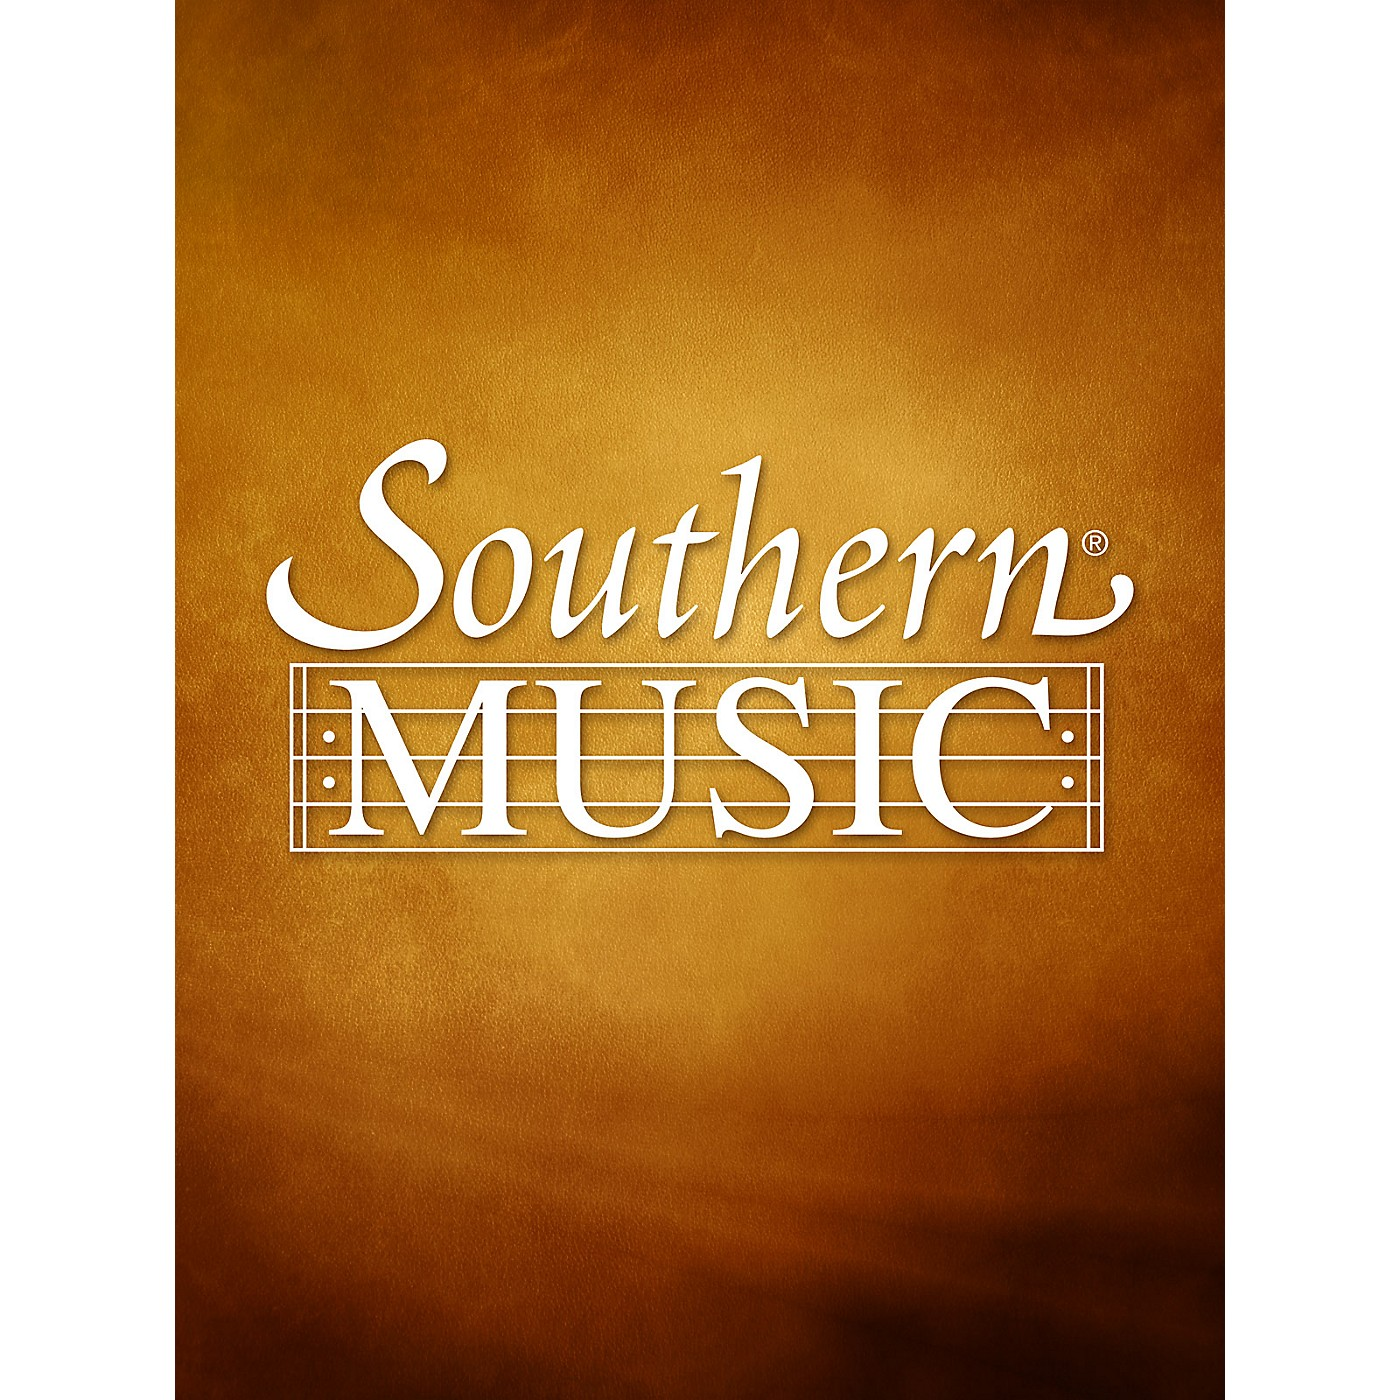 Southern Music for Concert Band - Volume 22 (Recordings & Videos/Band Cd Recording) Concert Band thumbnail